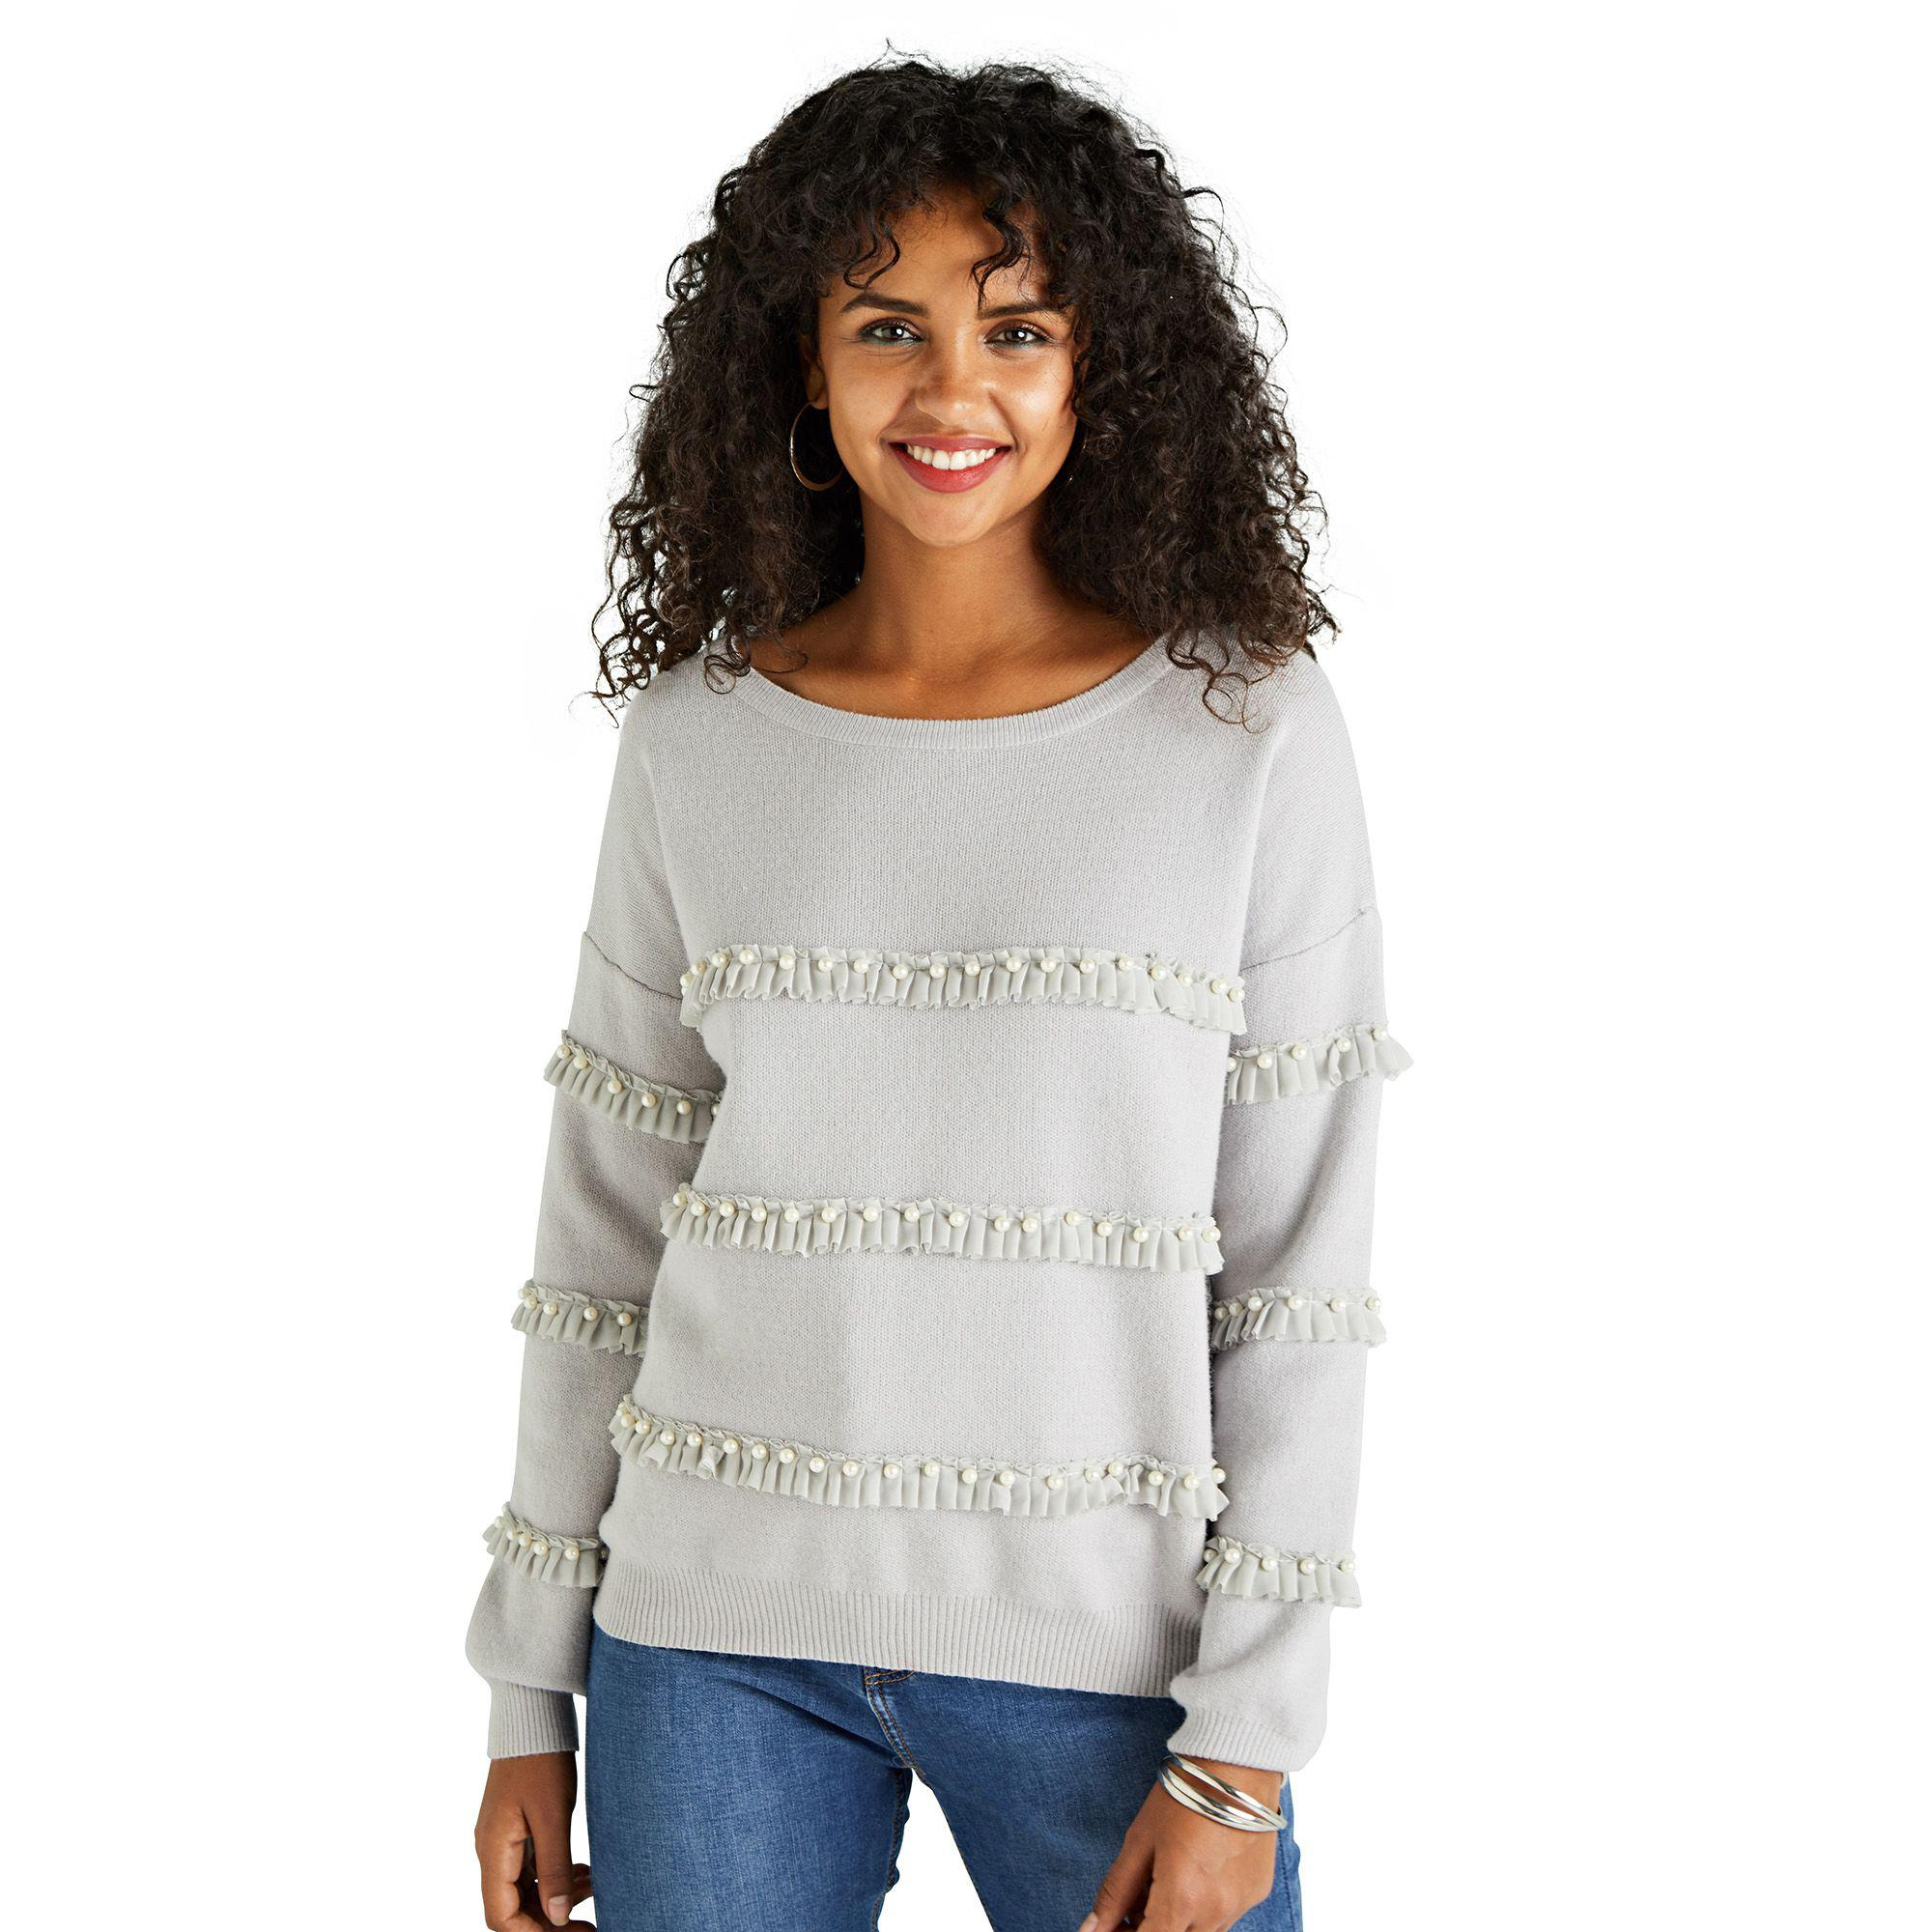 96fbb88ced1726 Yumi' Light Grey Pearl And Ruffle Embellished Jumper in Gray - Lyst